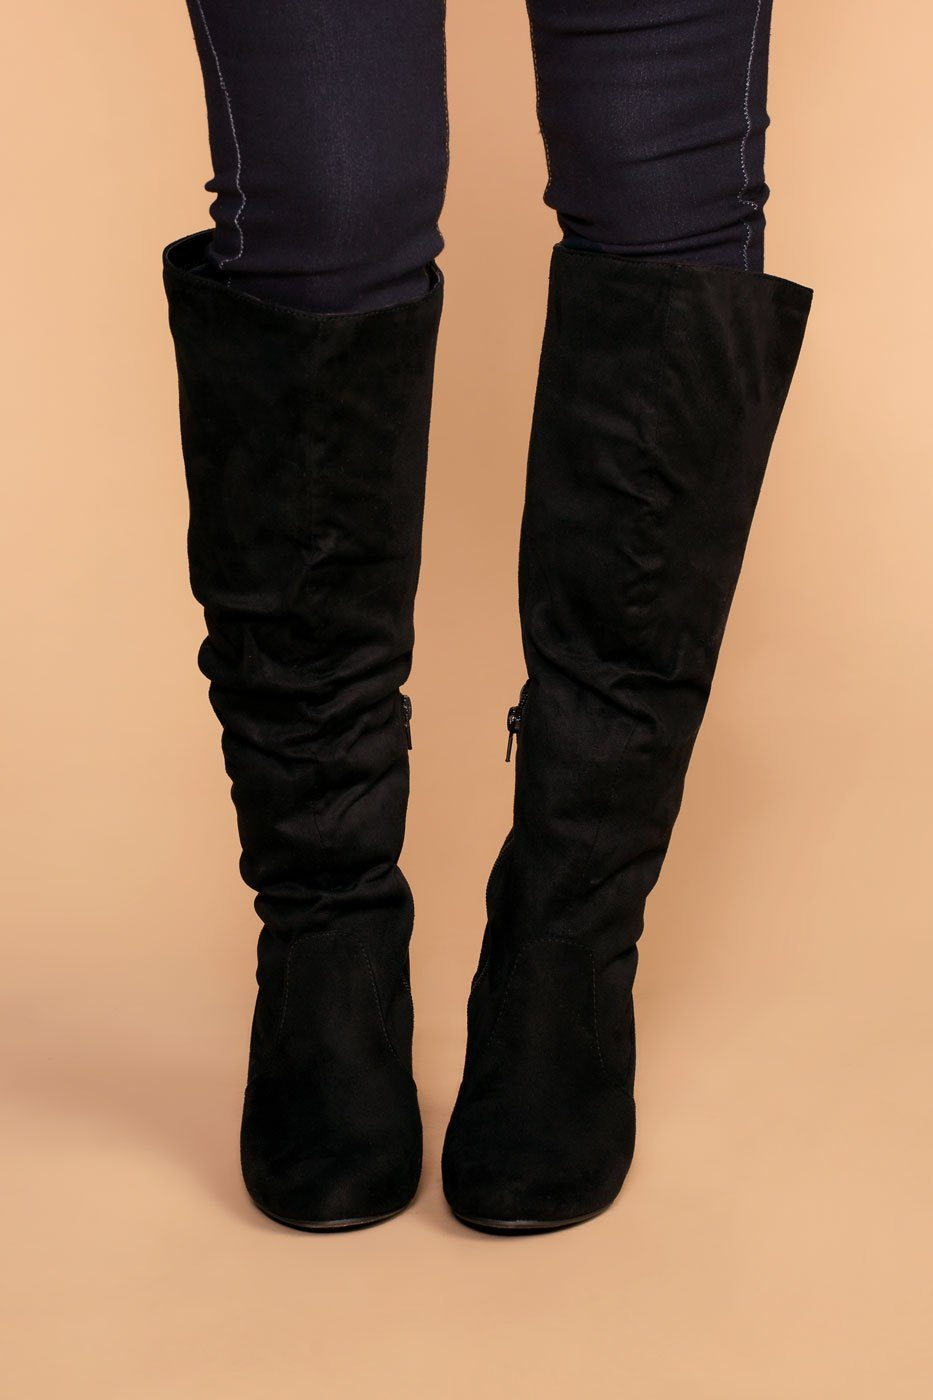 aa7f9f28c5d Cassia Black Knee High Boots